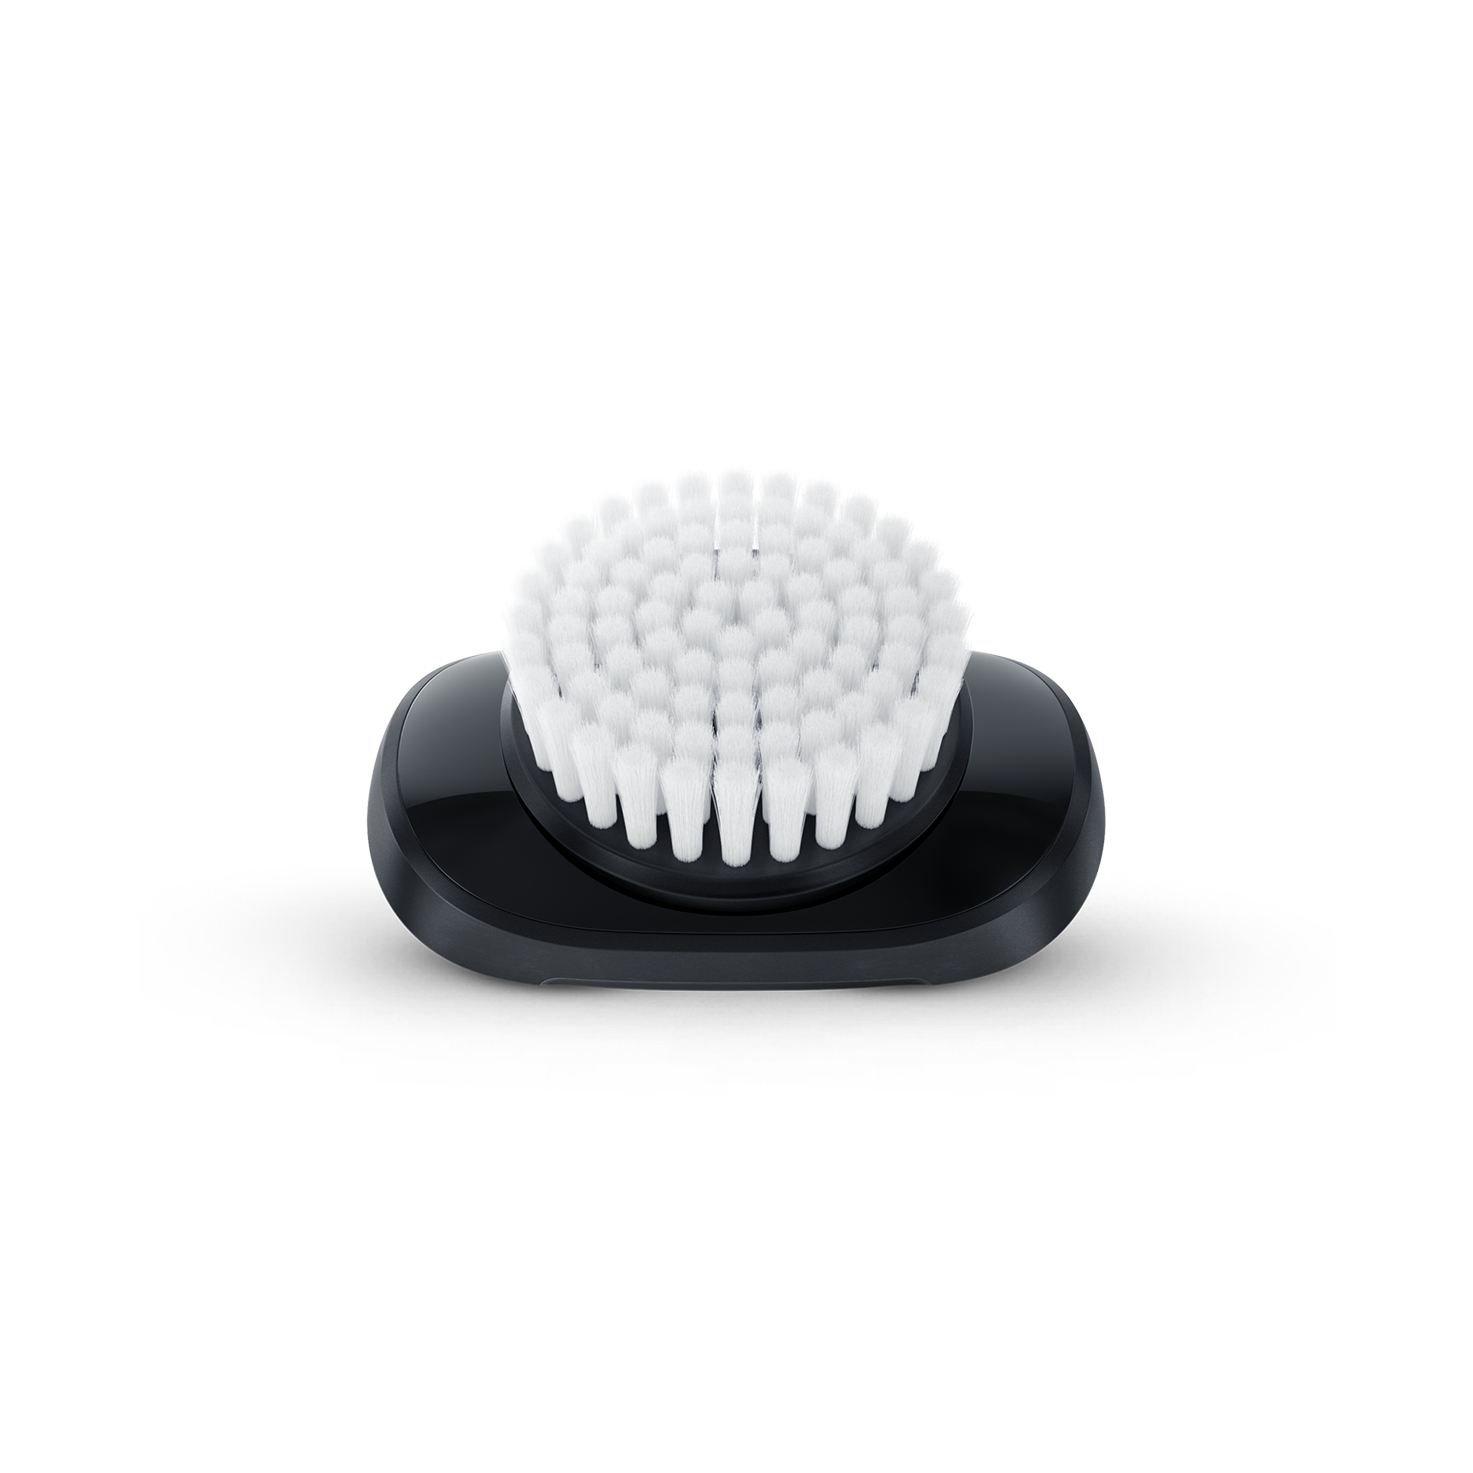 EasyClick Cleansing Brush attachment for Braun Series 5, 6 and 7 electric shaver